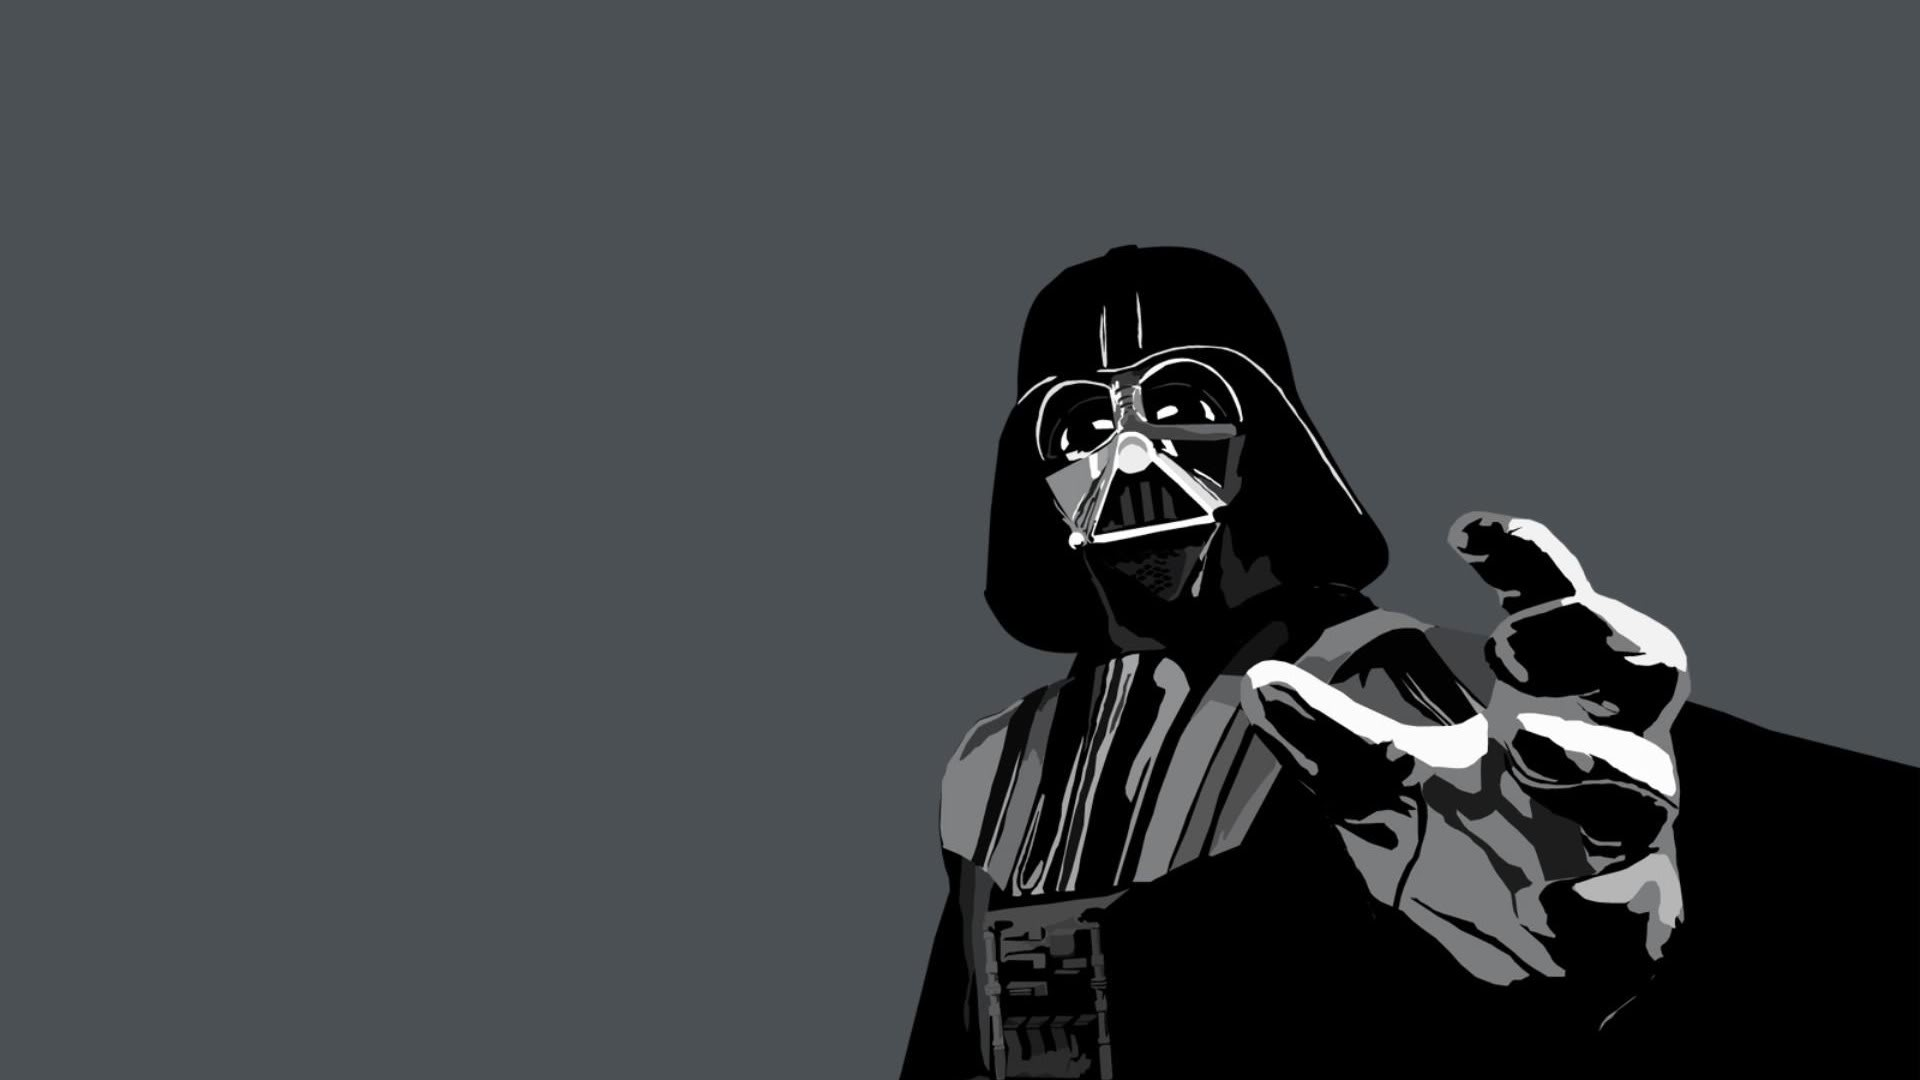 Star Wars Wallpaper 3 Wallpapersbq